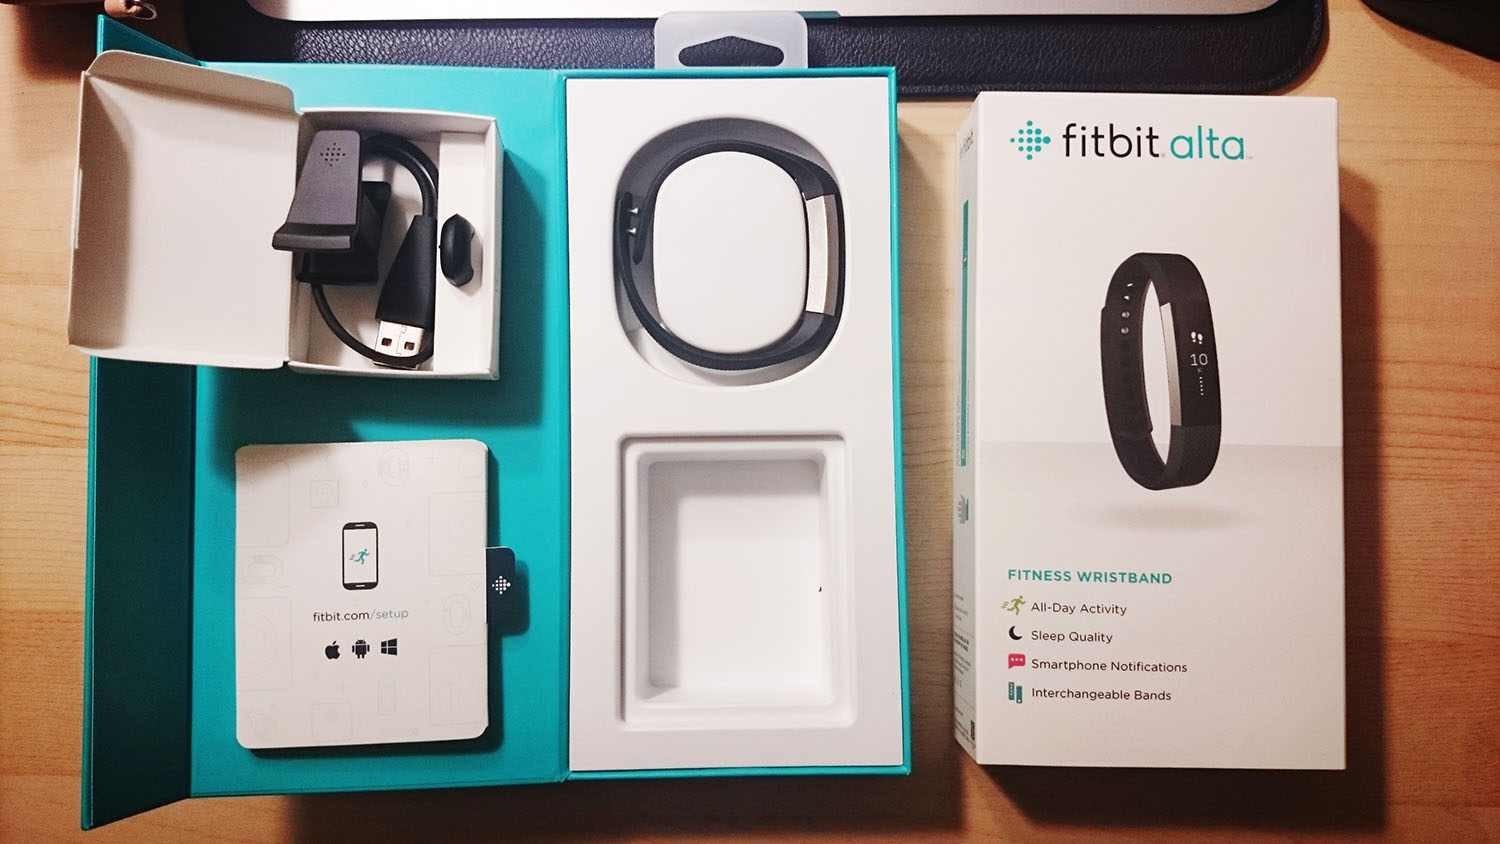 How Do You Hook Up Fitbit